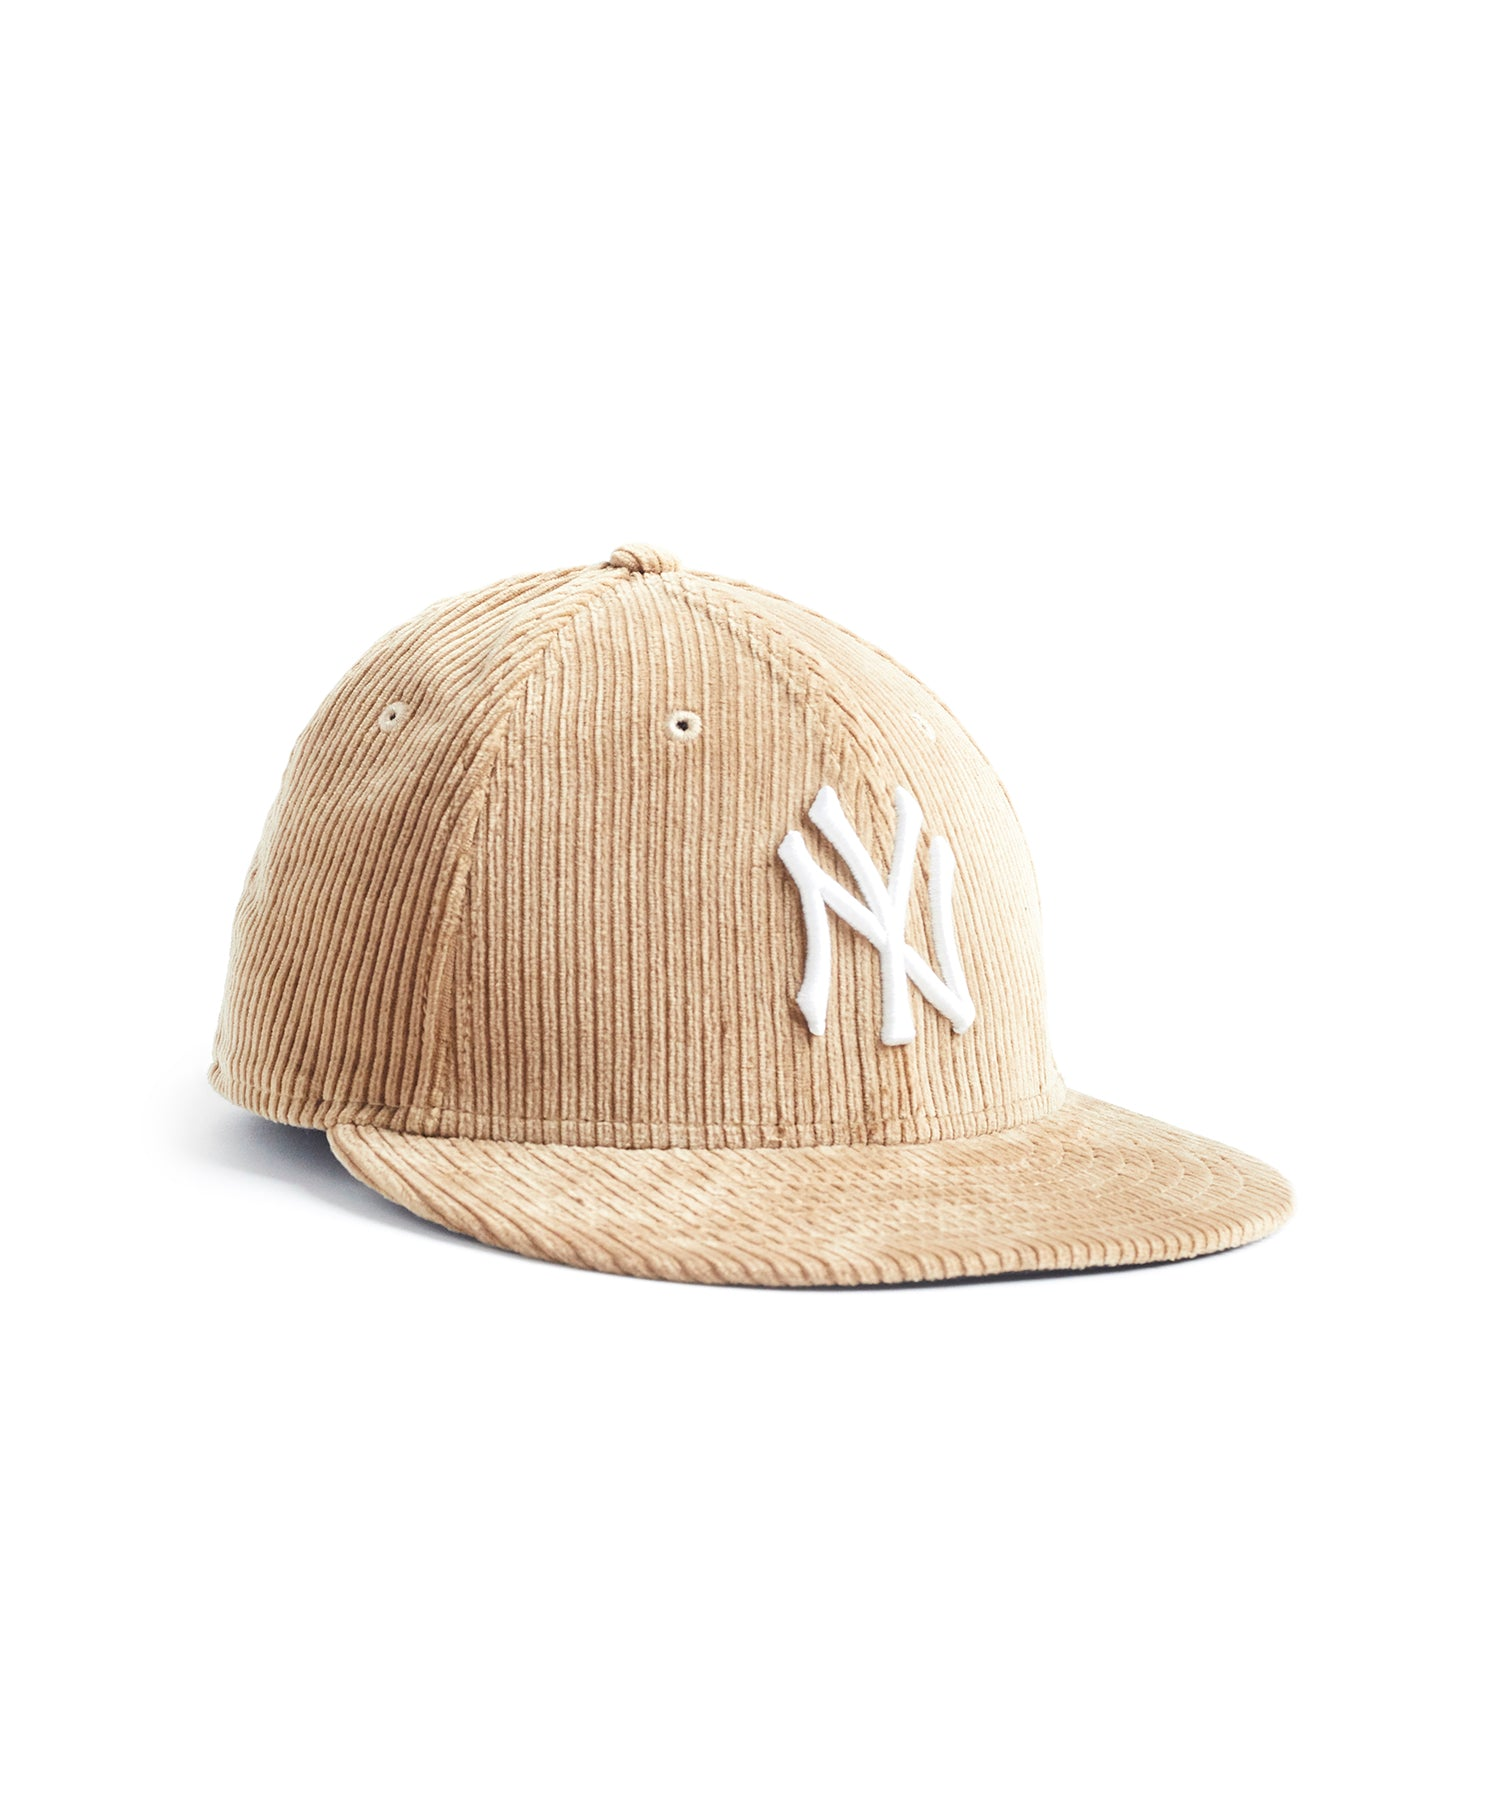 Exclusive Todd Snyder + New Era Corduroy Yankees Cap in Camel